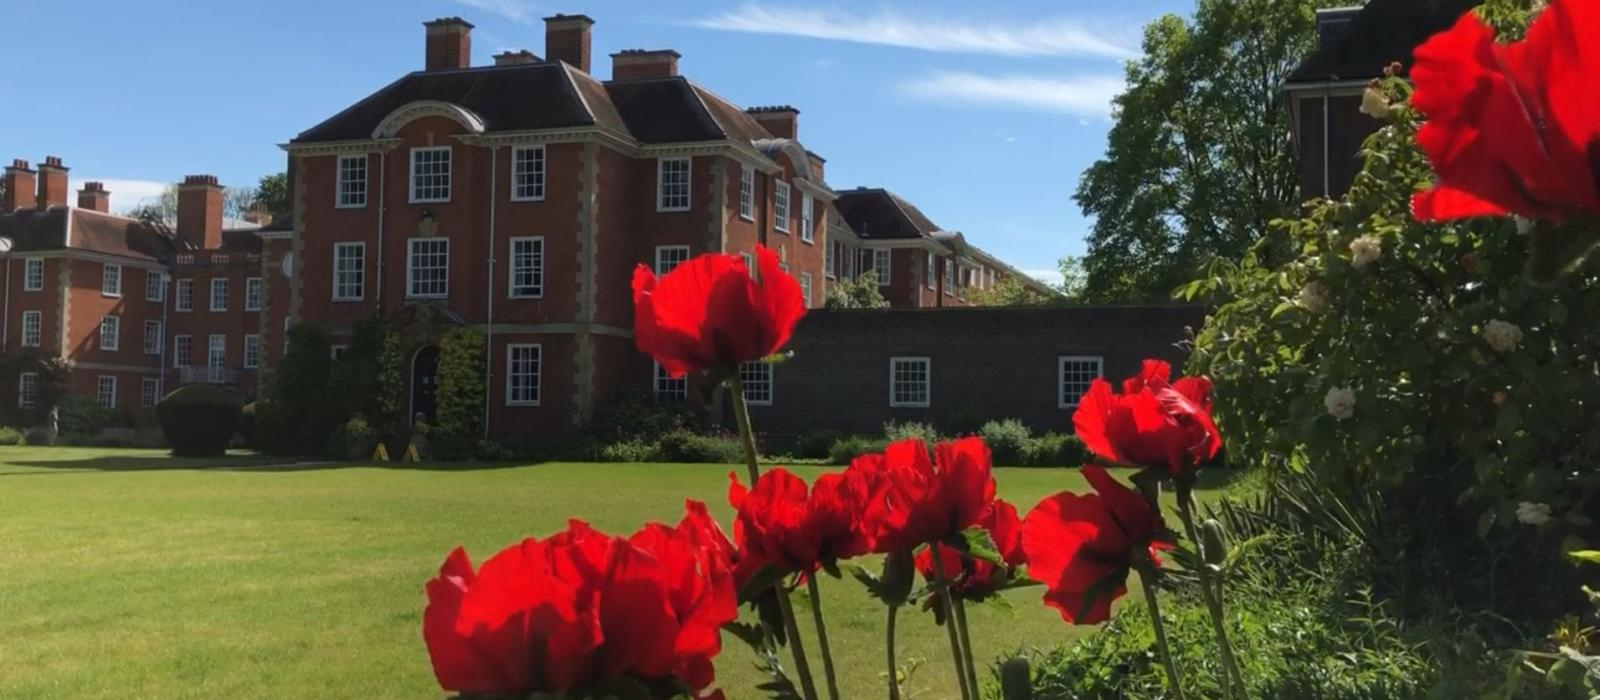 LMH poppies taken by the SCR lawn with a view of buildings